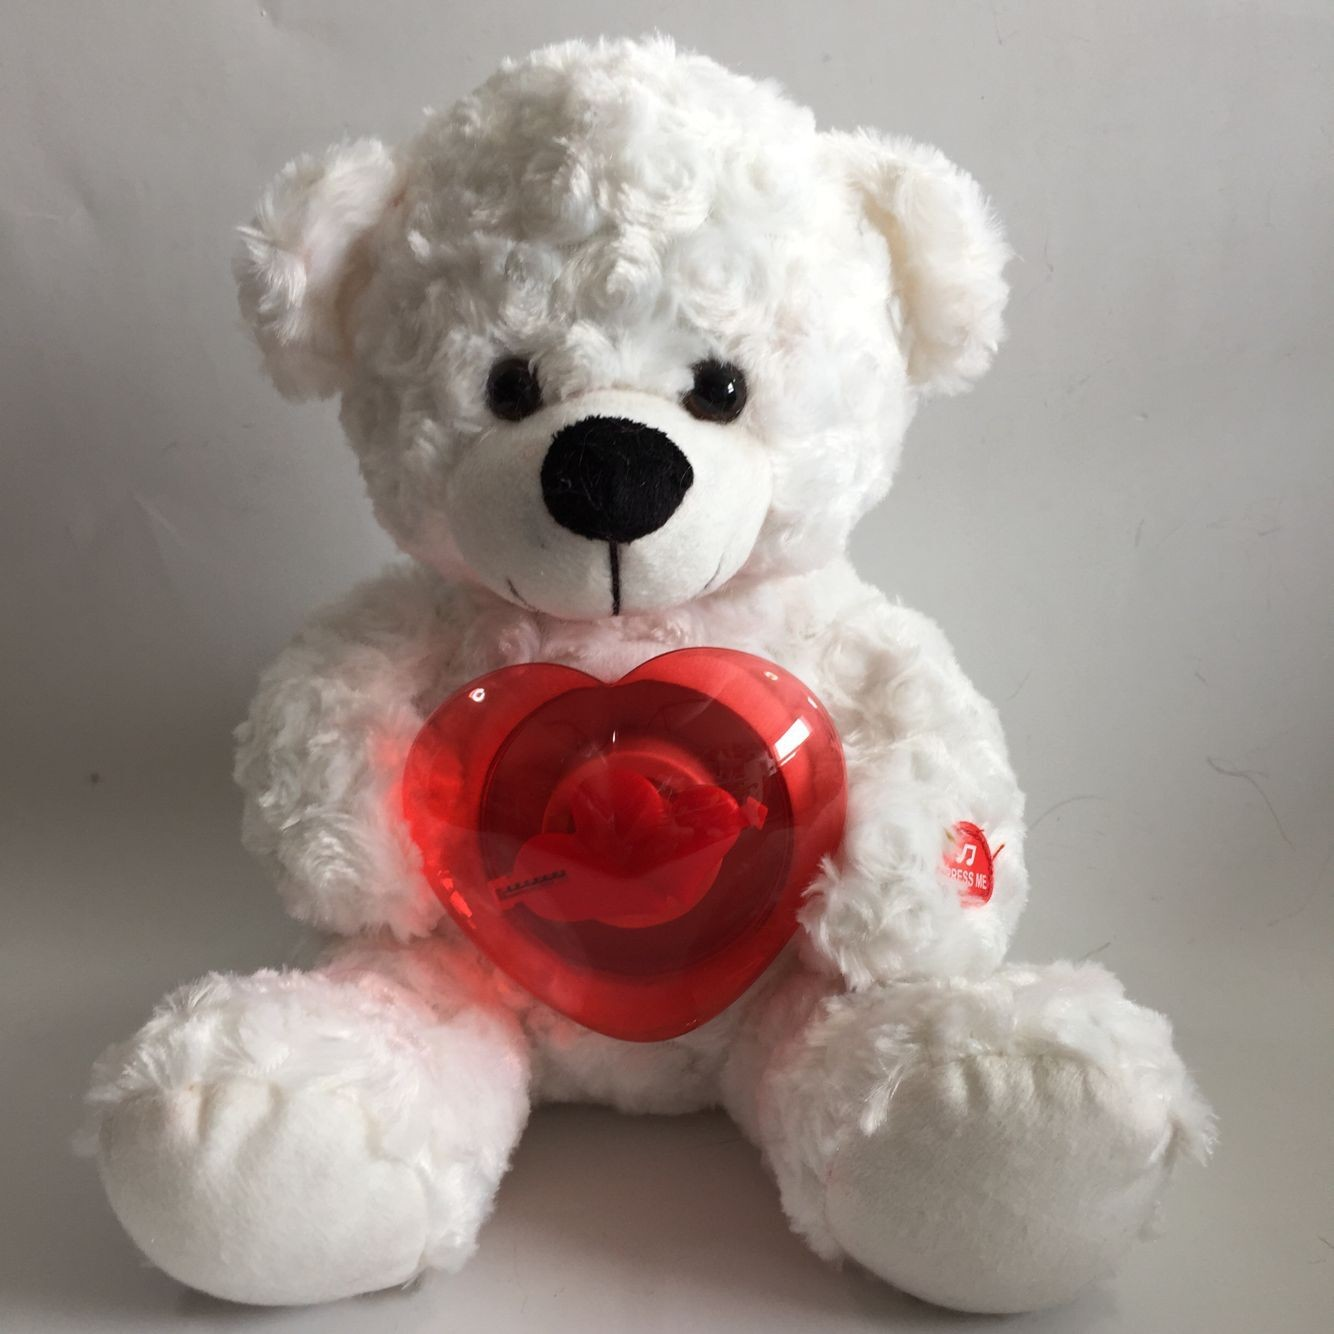 Plush Singing Bear Toys With The Lighting Fans